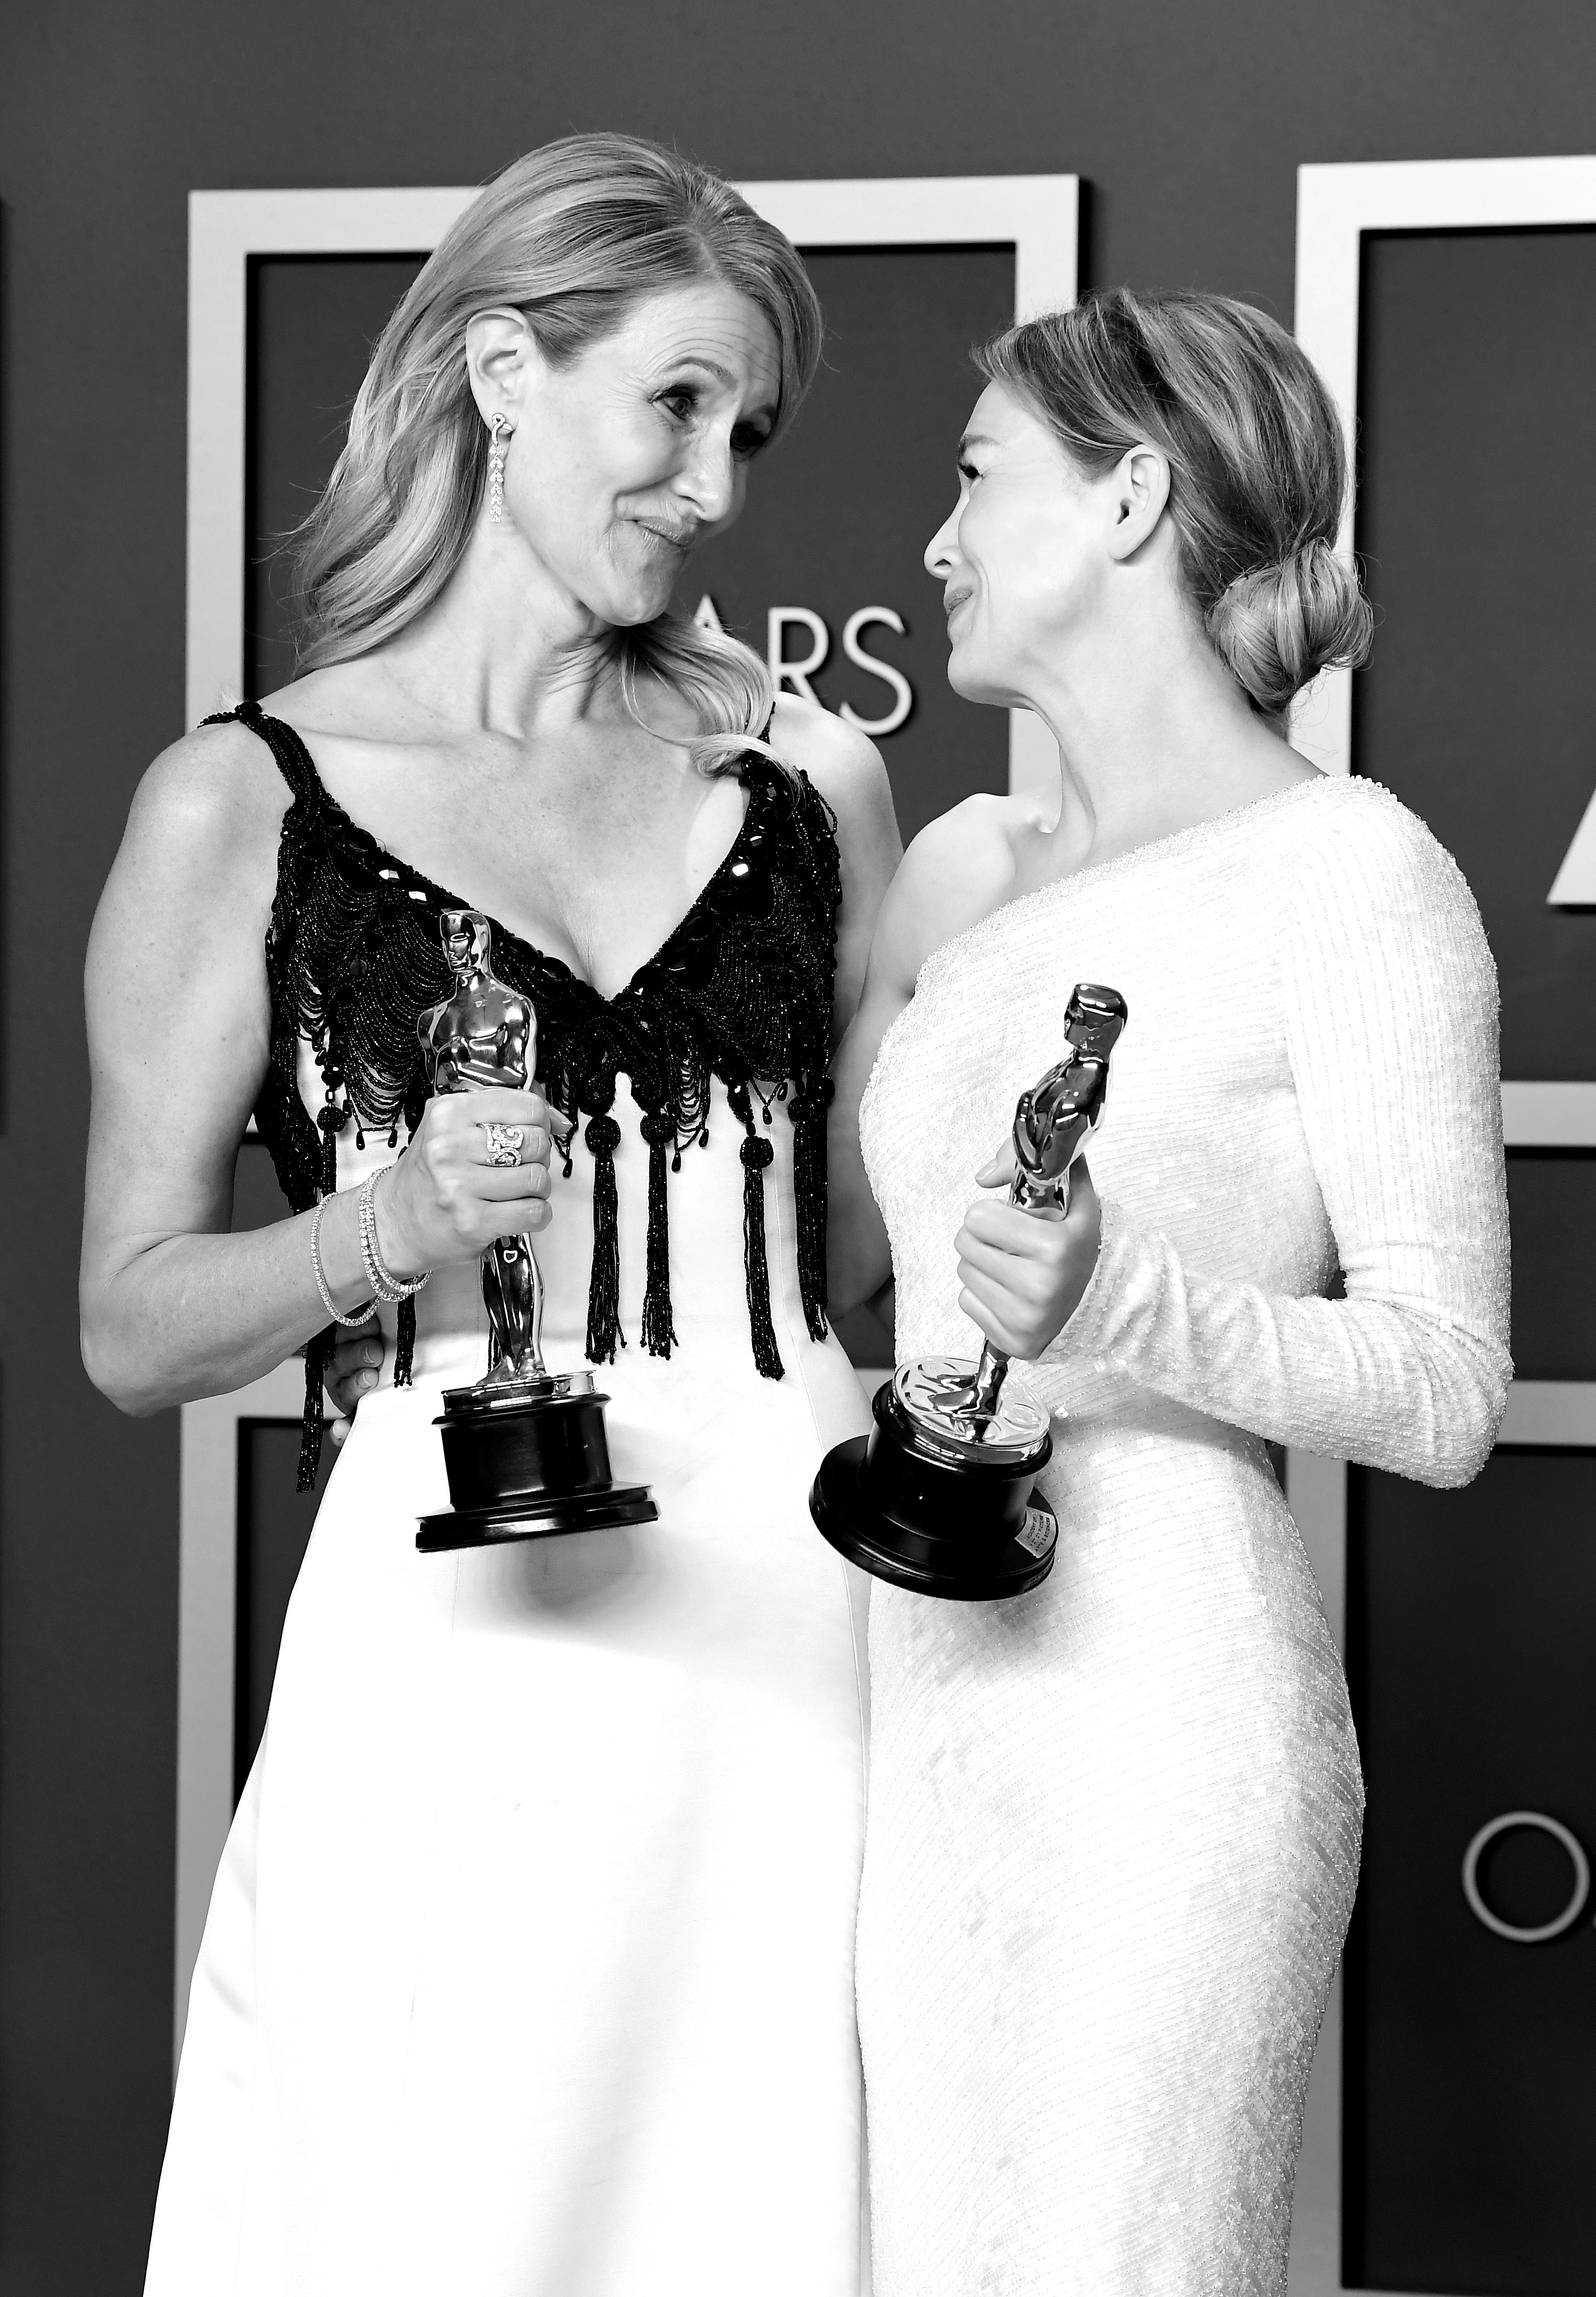 Renée Zellweger and Laura Dern at an event for The Oscars (2020)